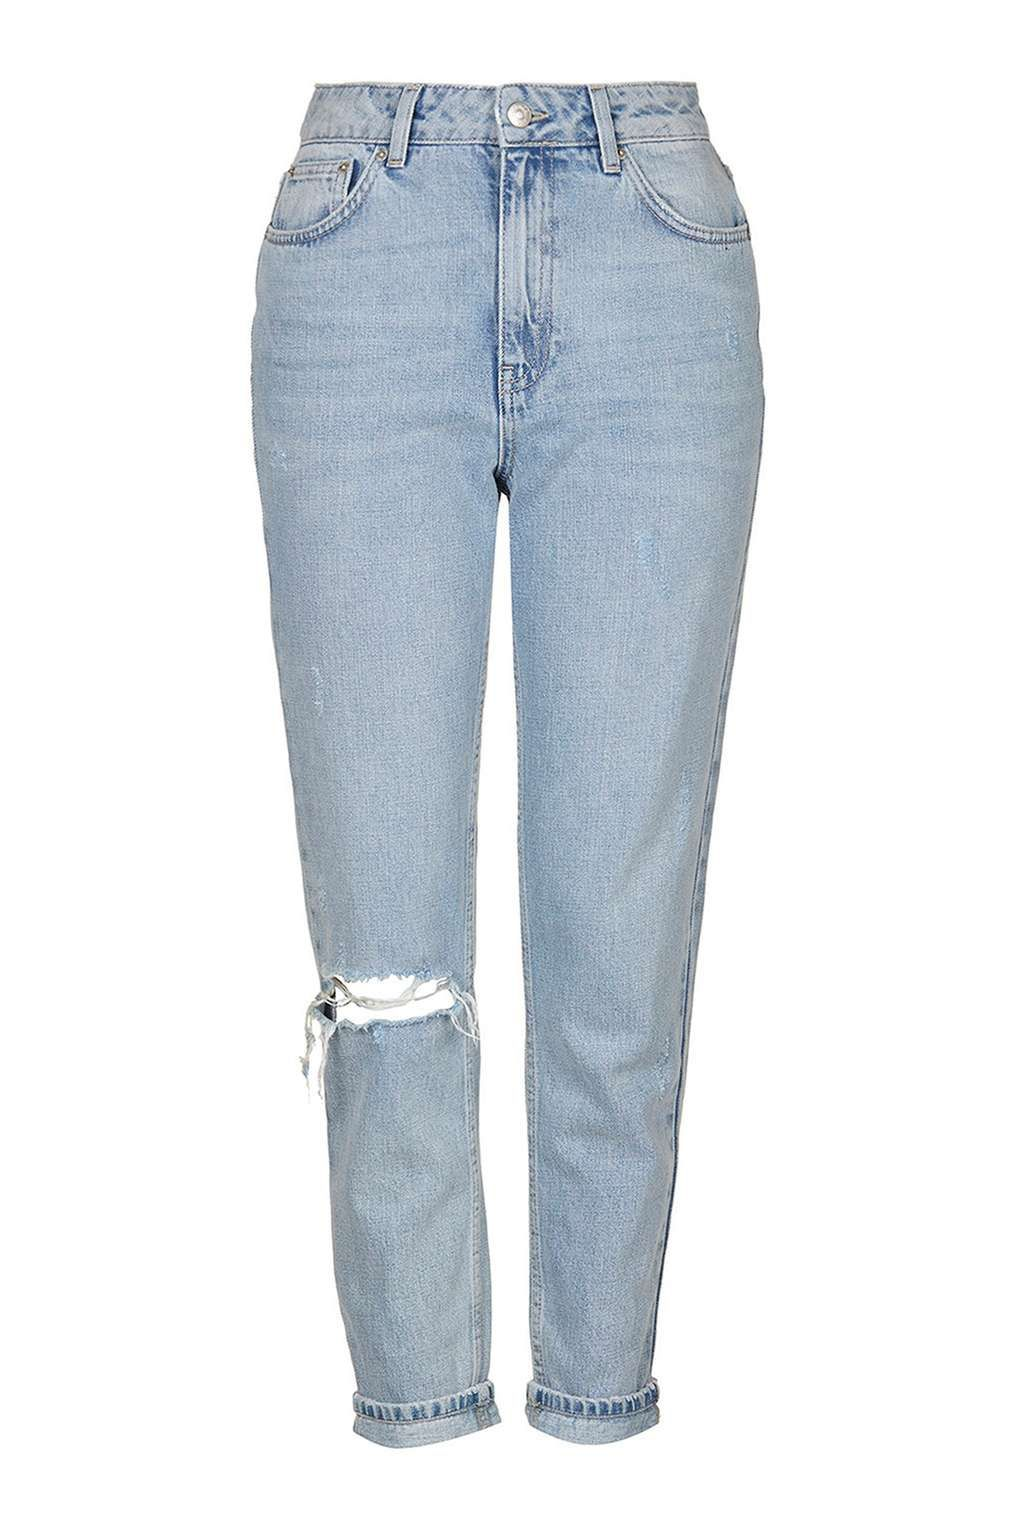 42a79cc7d MOTO Bleach Rip Mom Jeans | Clothesss | Ripped mom jeans, Best ...